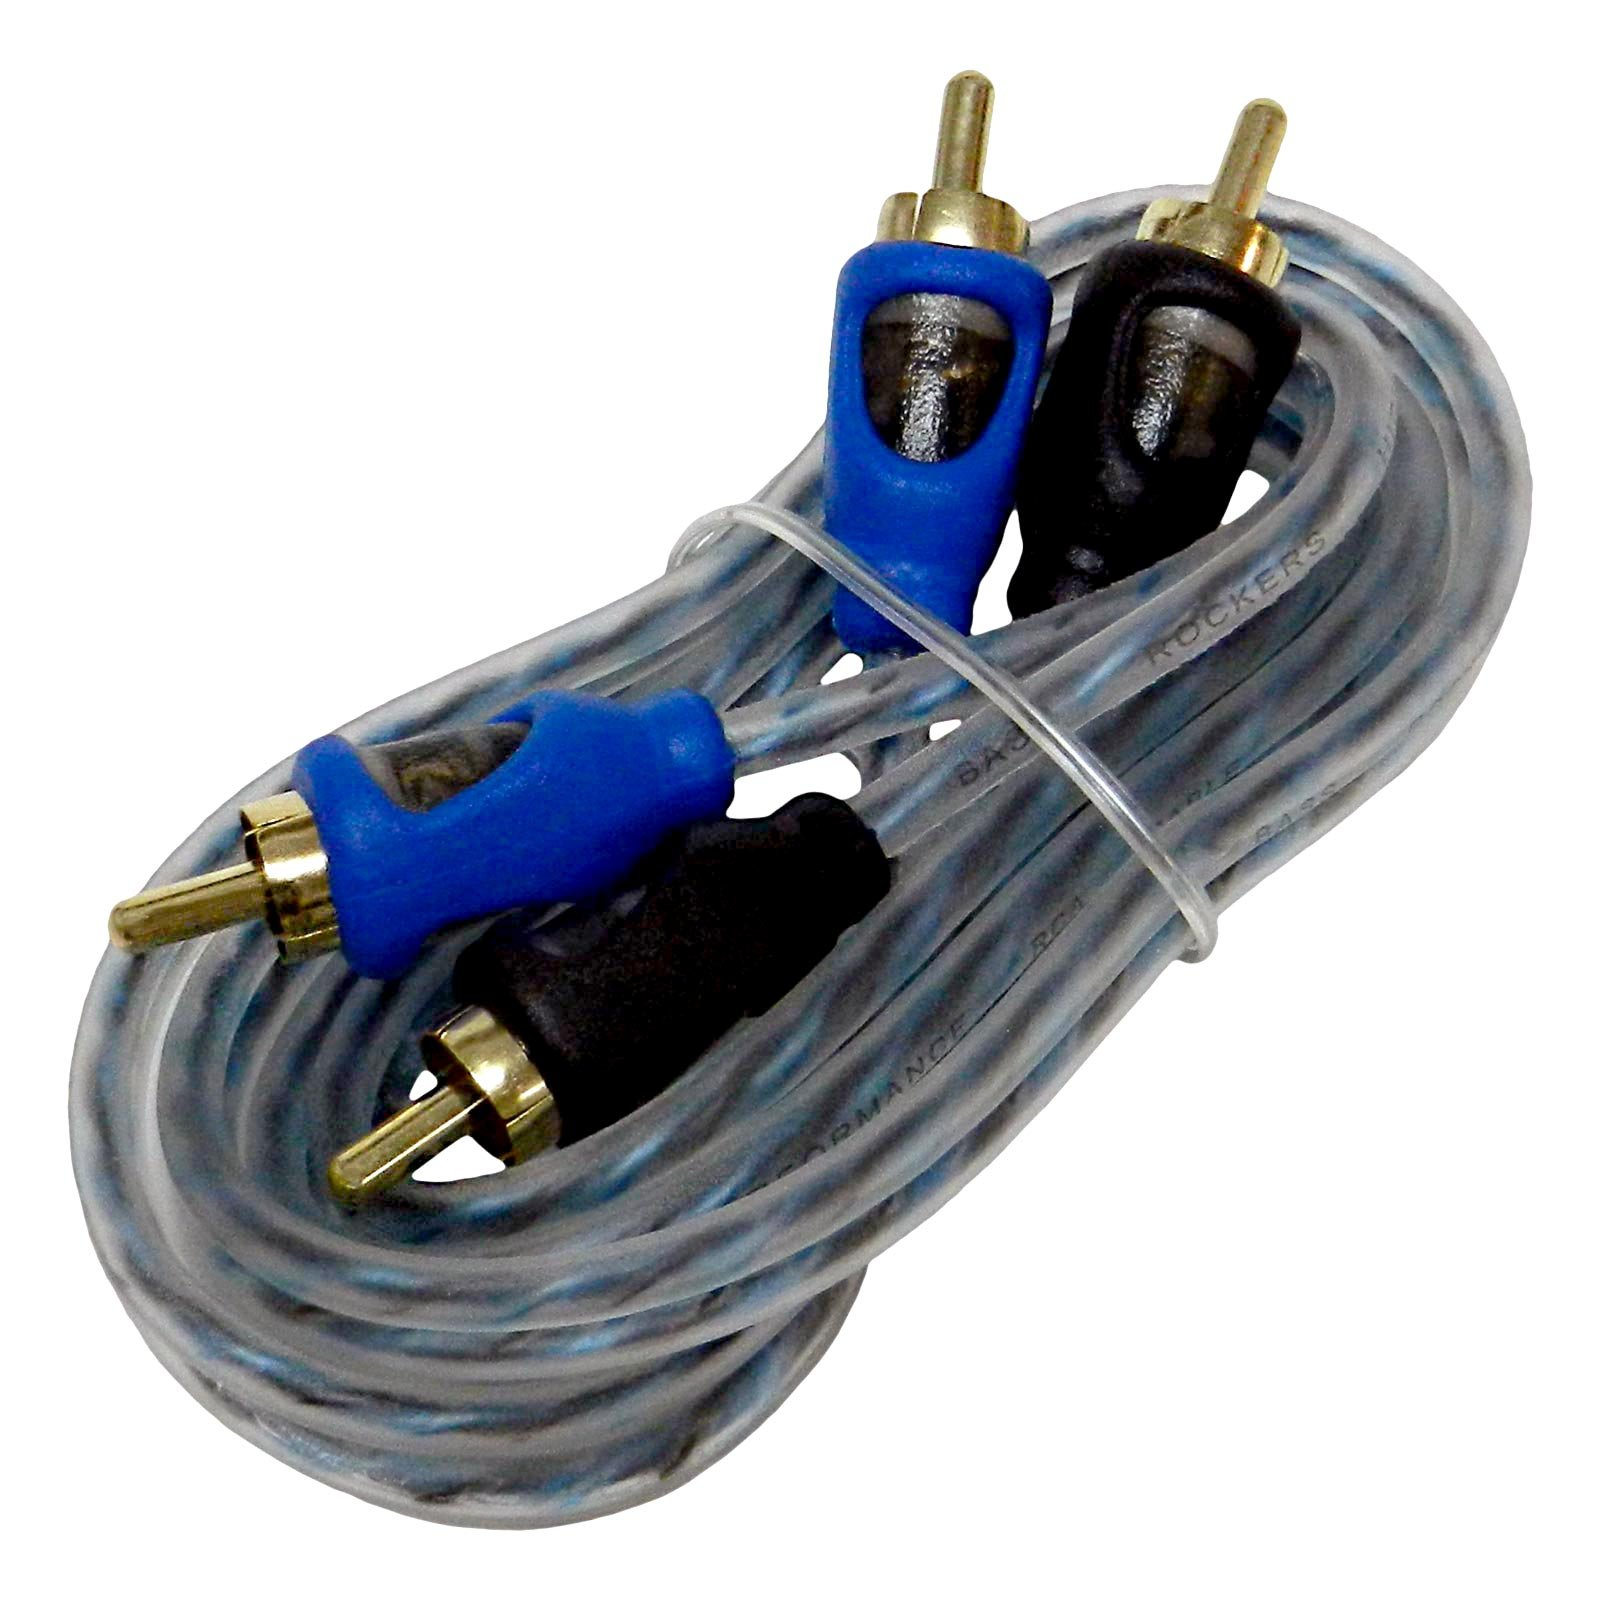 Triple Shielded RCA Cable 1 Meter KnuKonceptz Krystal 2 Channel 1M Twisted Pair OFC